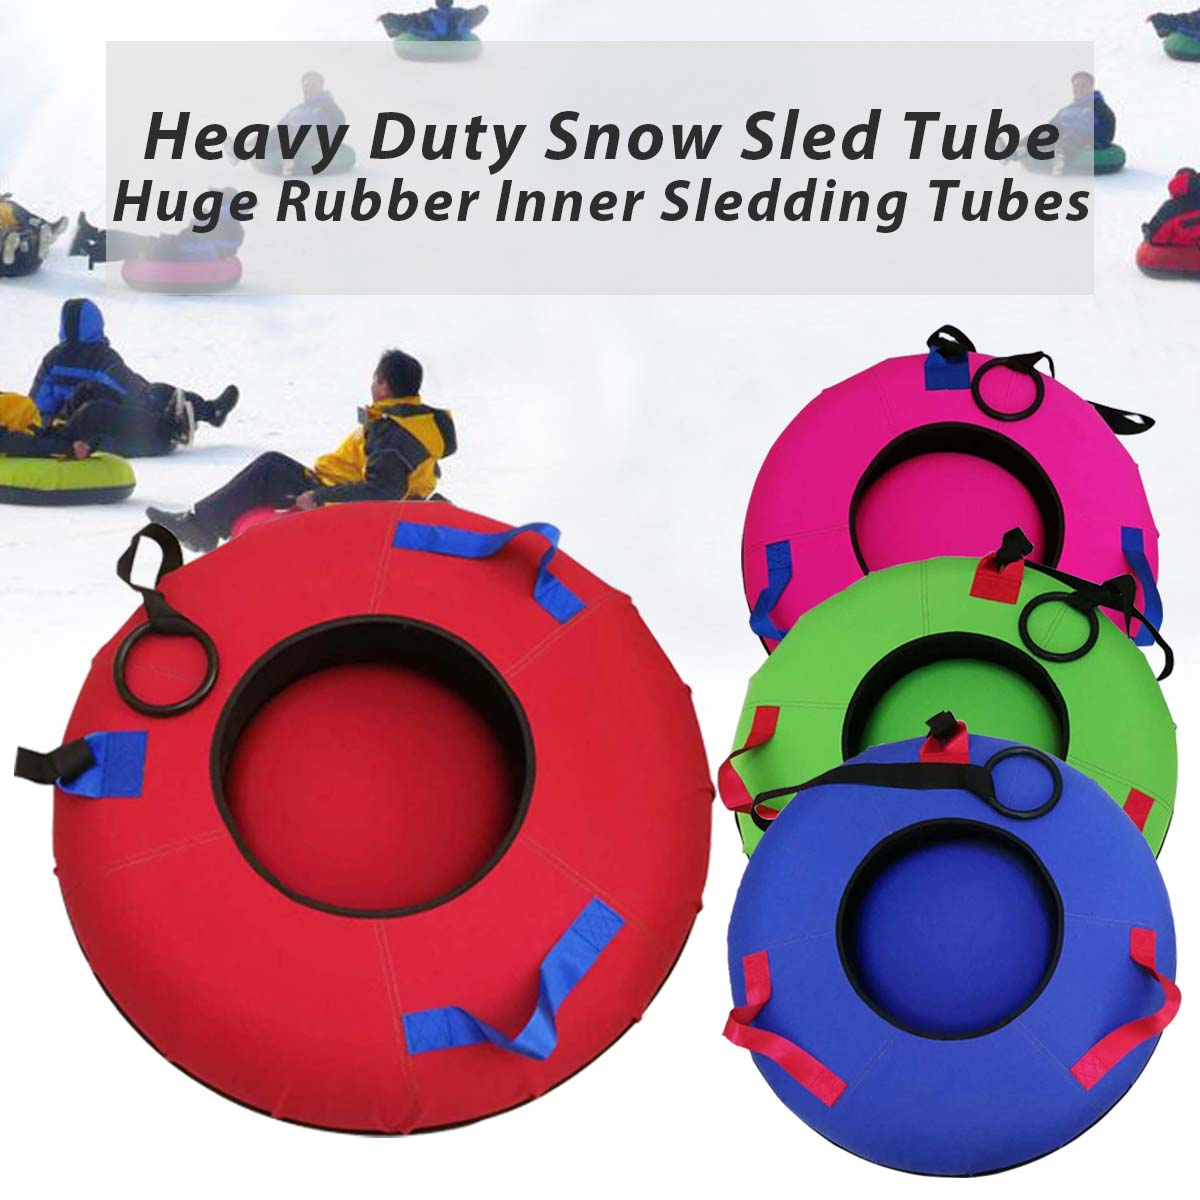 Heavy Duty Traîneau De Neige Tubes sports de Plein Air Skis ski gonflable conseil Double conception